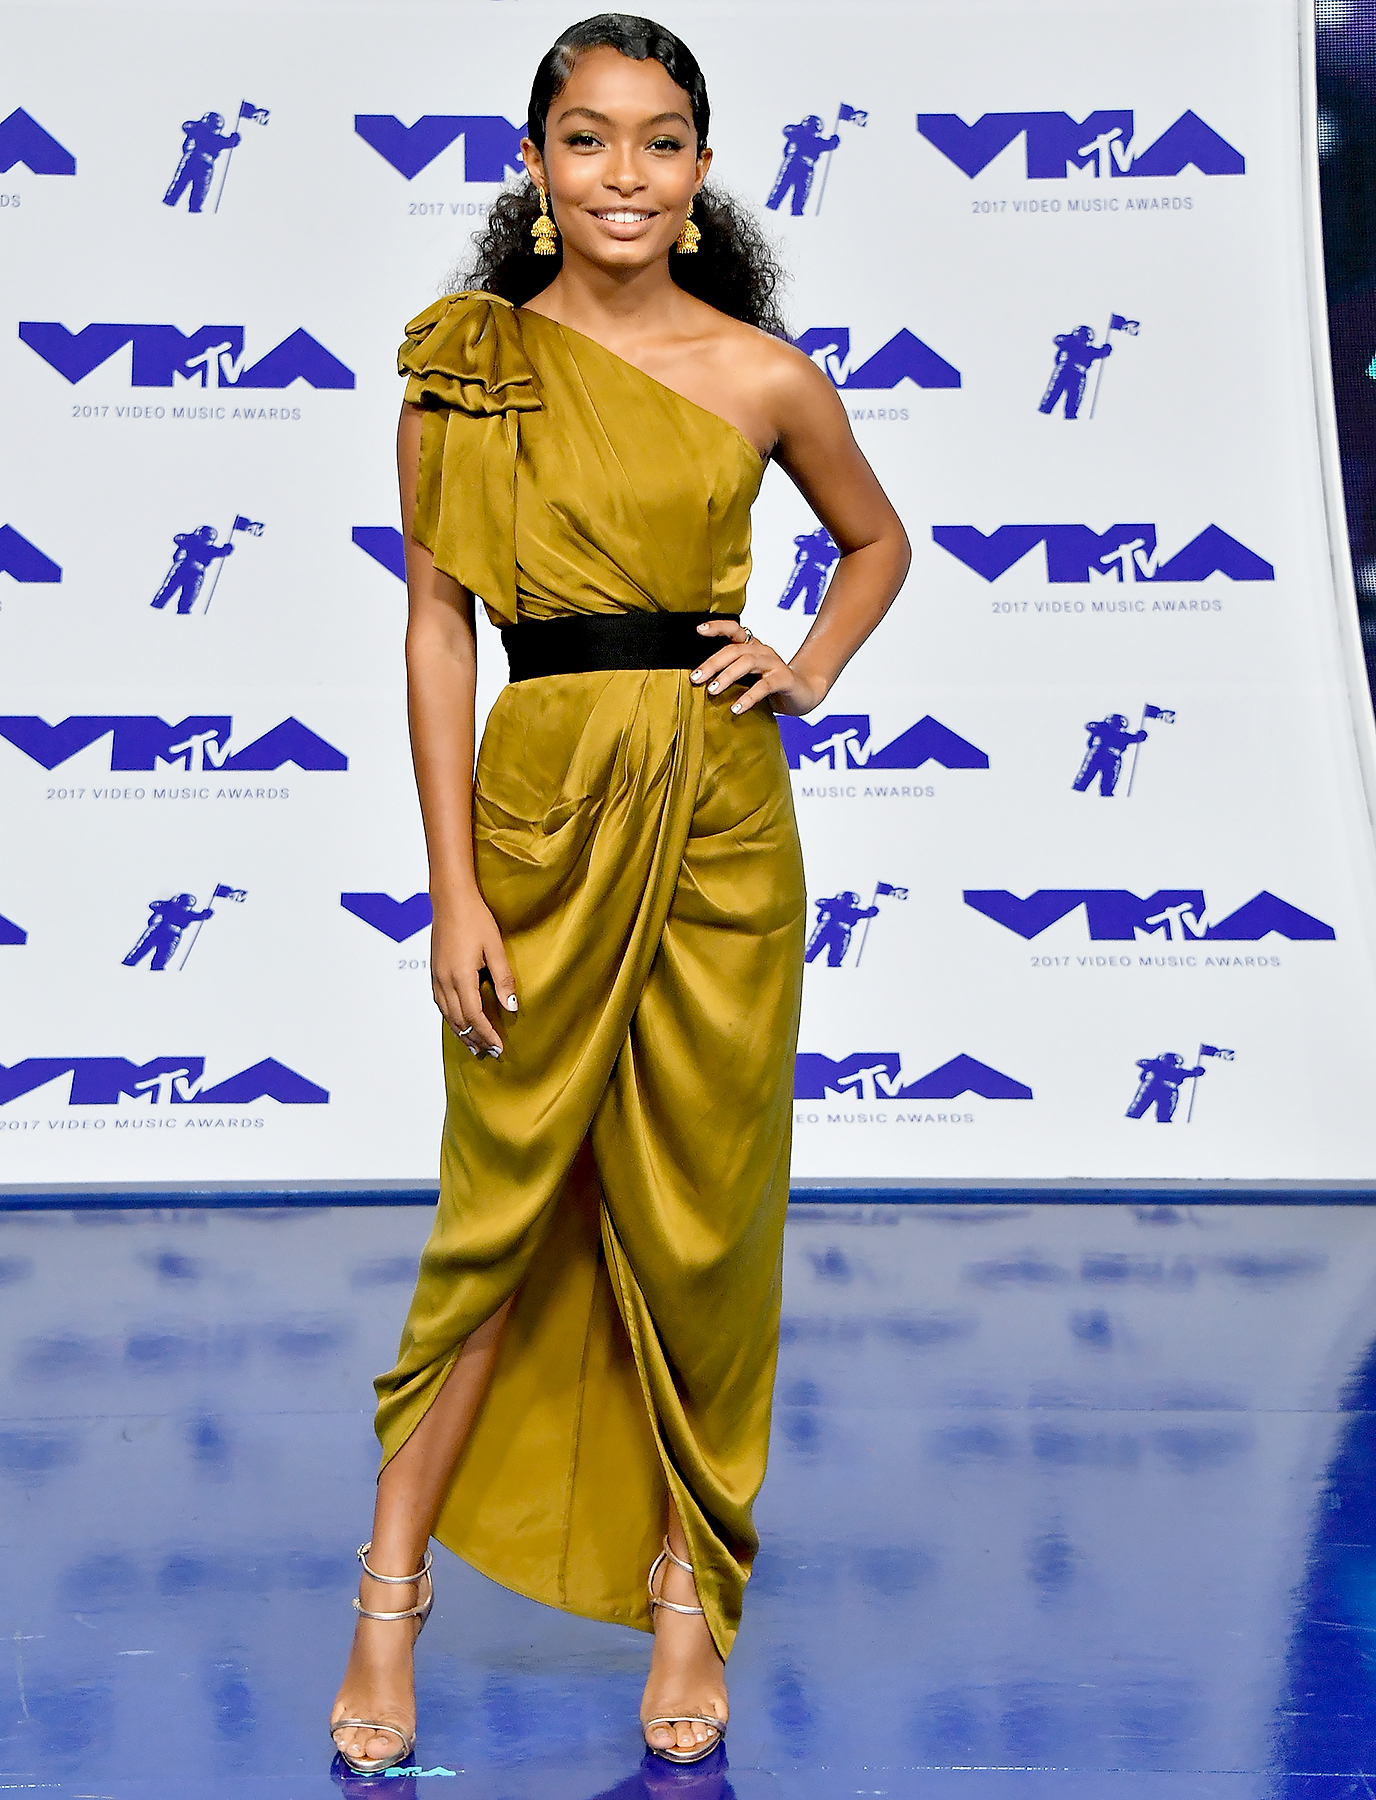 Yara Shahidi attends the 2017 MTV Video Music Awards at The Forum on August 27, 2017 in Inglewood, California.